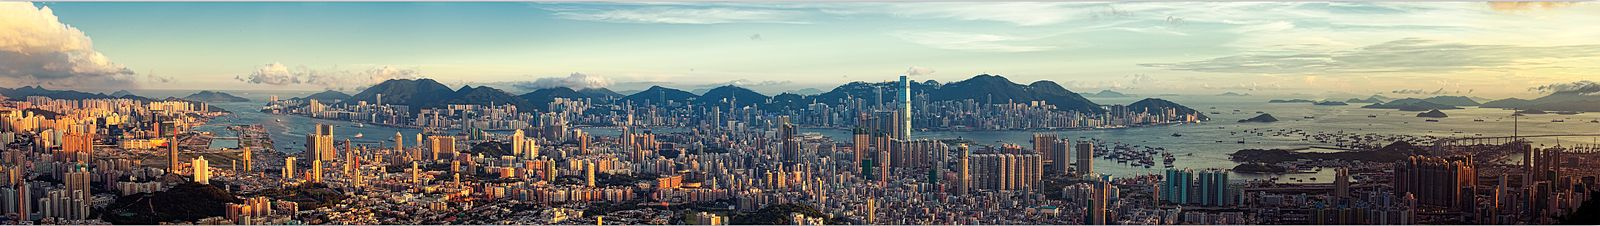 1600px-Kowloon_Panorama_by_Ryan_Cheng_2010